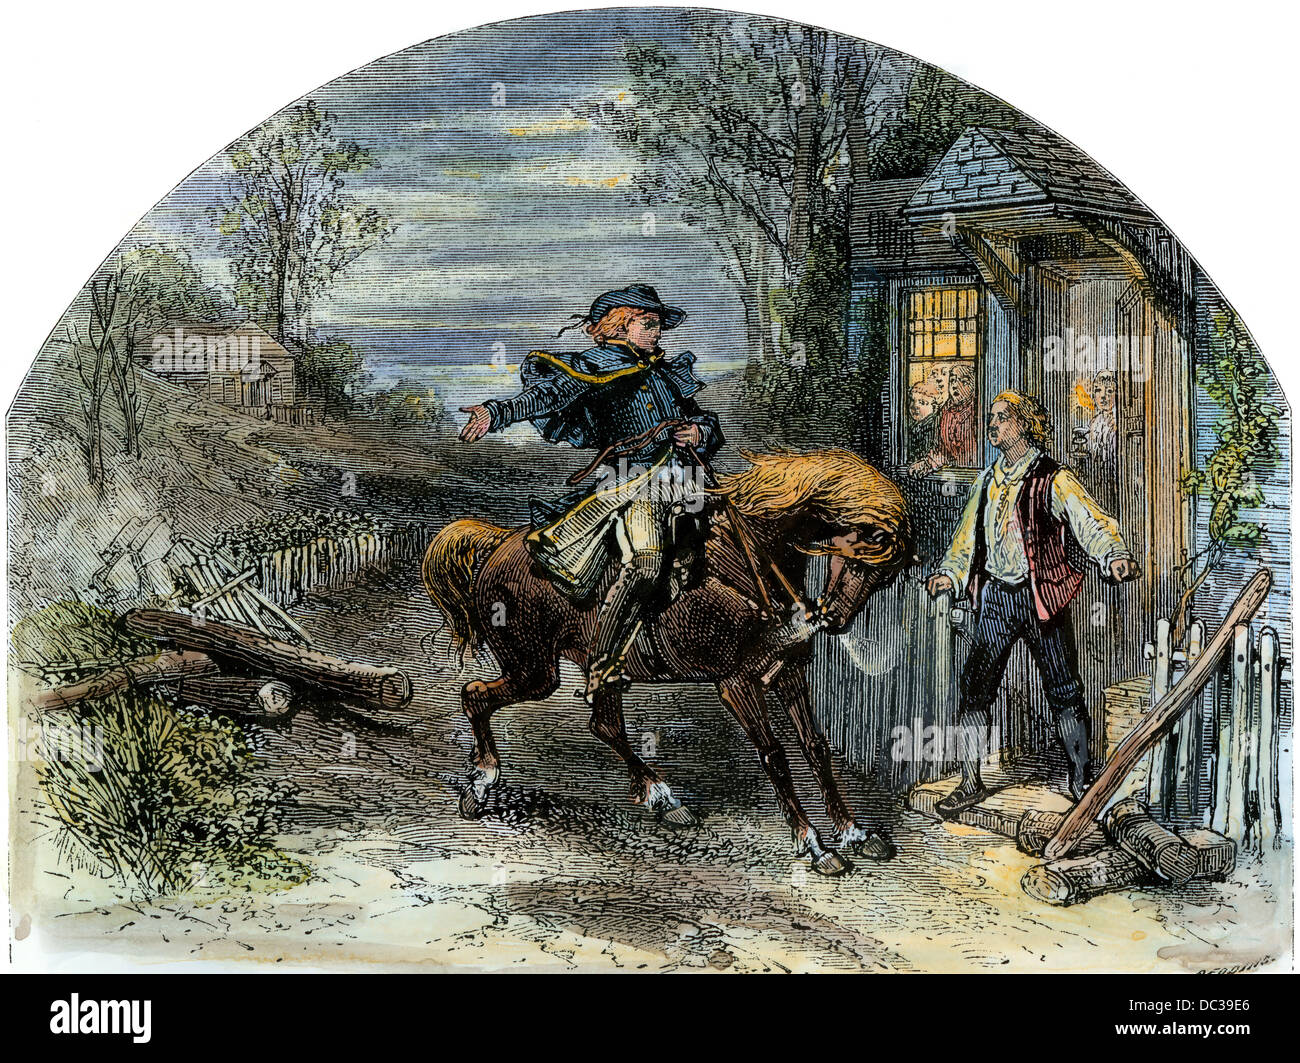 Midnight ride of Paul Revere, starting the American Revolution, 1775. Hand-colored woodcut - Stock Image